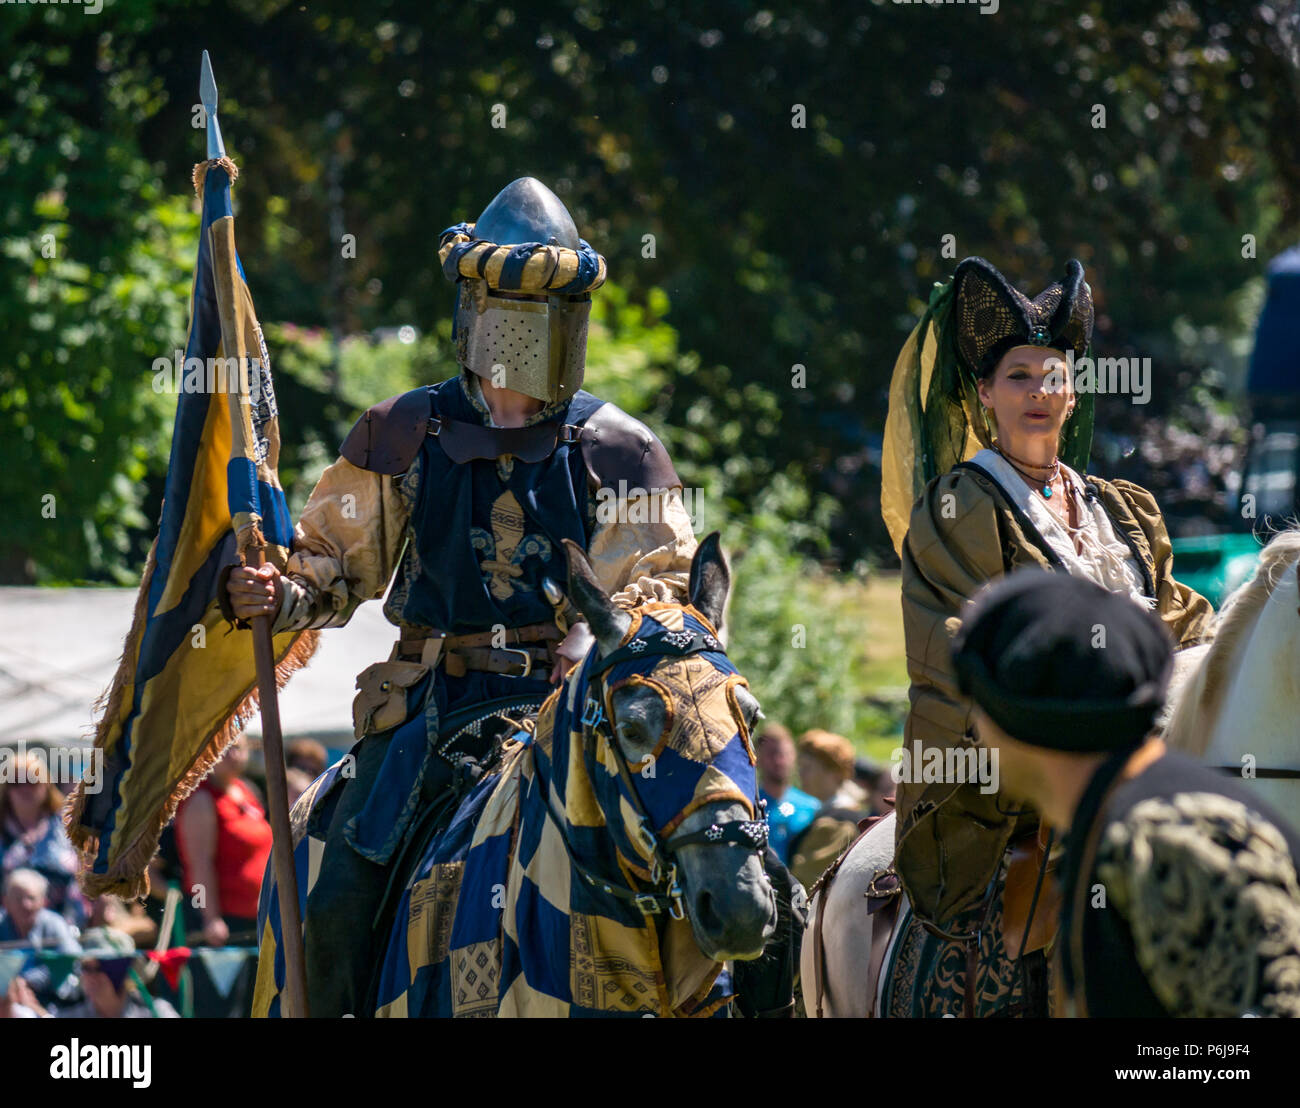 Jousting and Medieval Fair at Linlithgow Palace, Linlithgow, Scotland, United Kingdom, 30th June 2018. Historic Environment Scotland kick off their summer entertainment programme with a fabulous display of Medieval jousting in the grounds of the historic castle. The family fun day includes living history camps, medieval games, crafts, archery, and falconry. The jousting is performed by Les Amis D'Onno equine stunt team based in the Borders. Knight Sir Antoine Le Grand Chevalier D'Outremer, played by Antoine Ruault and Sue Zacharias on a white horse as a Medieval Lady - Stock Image